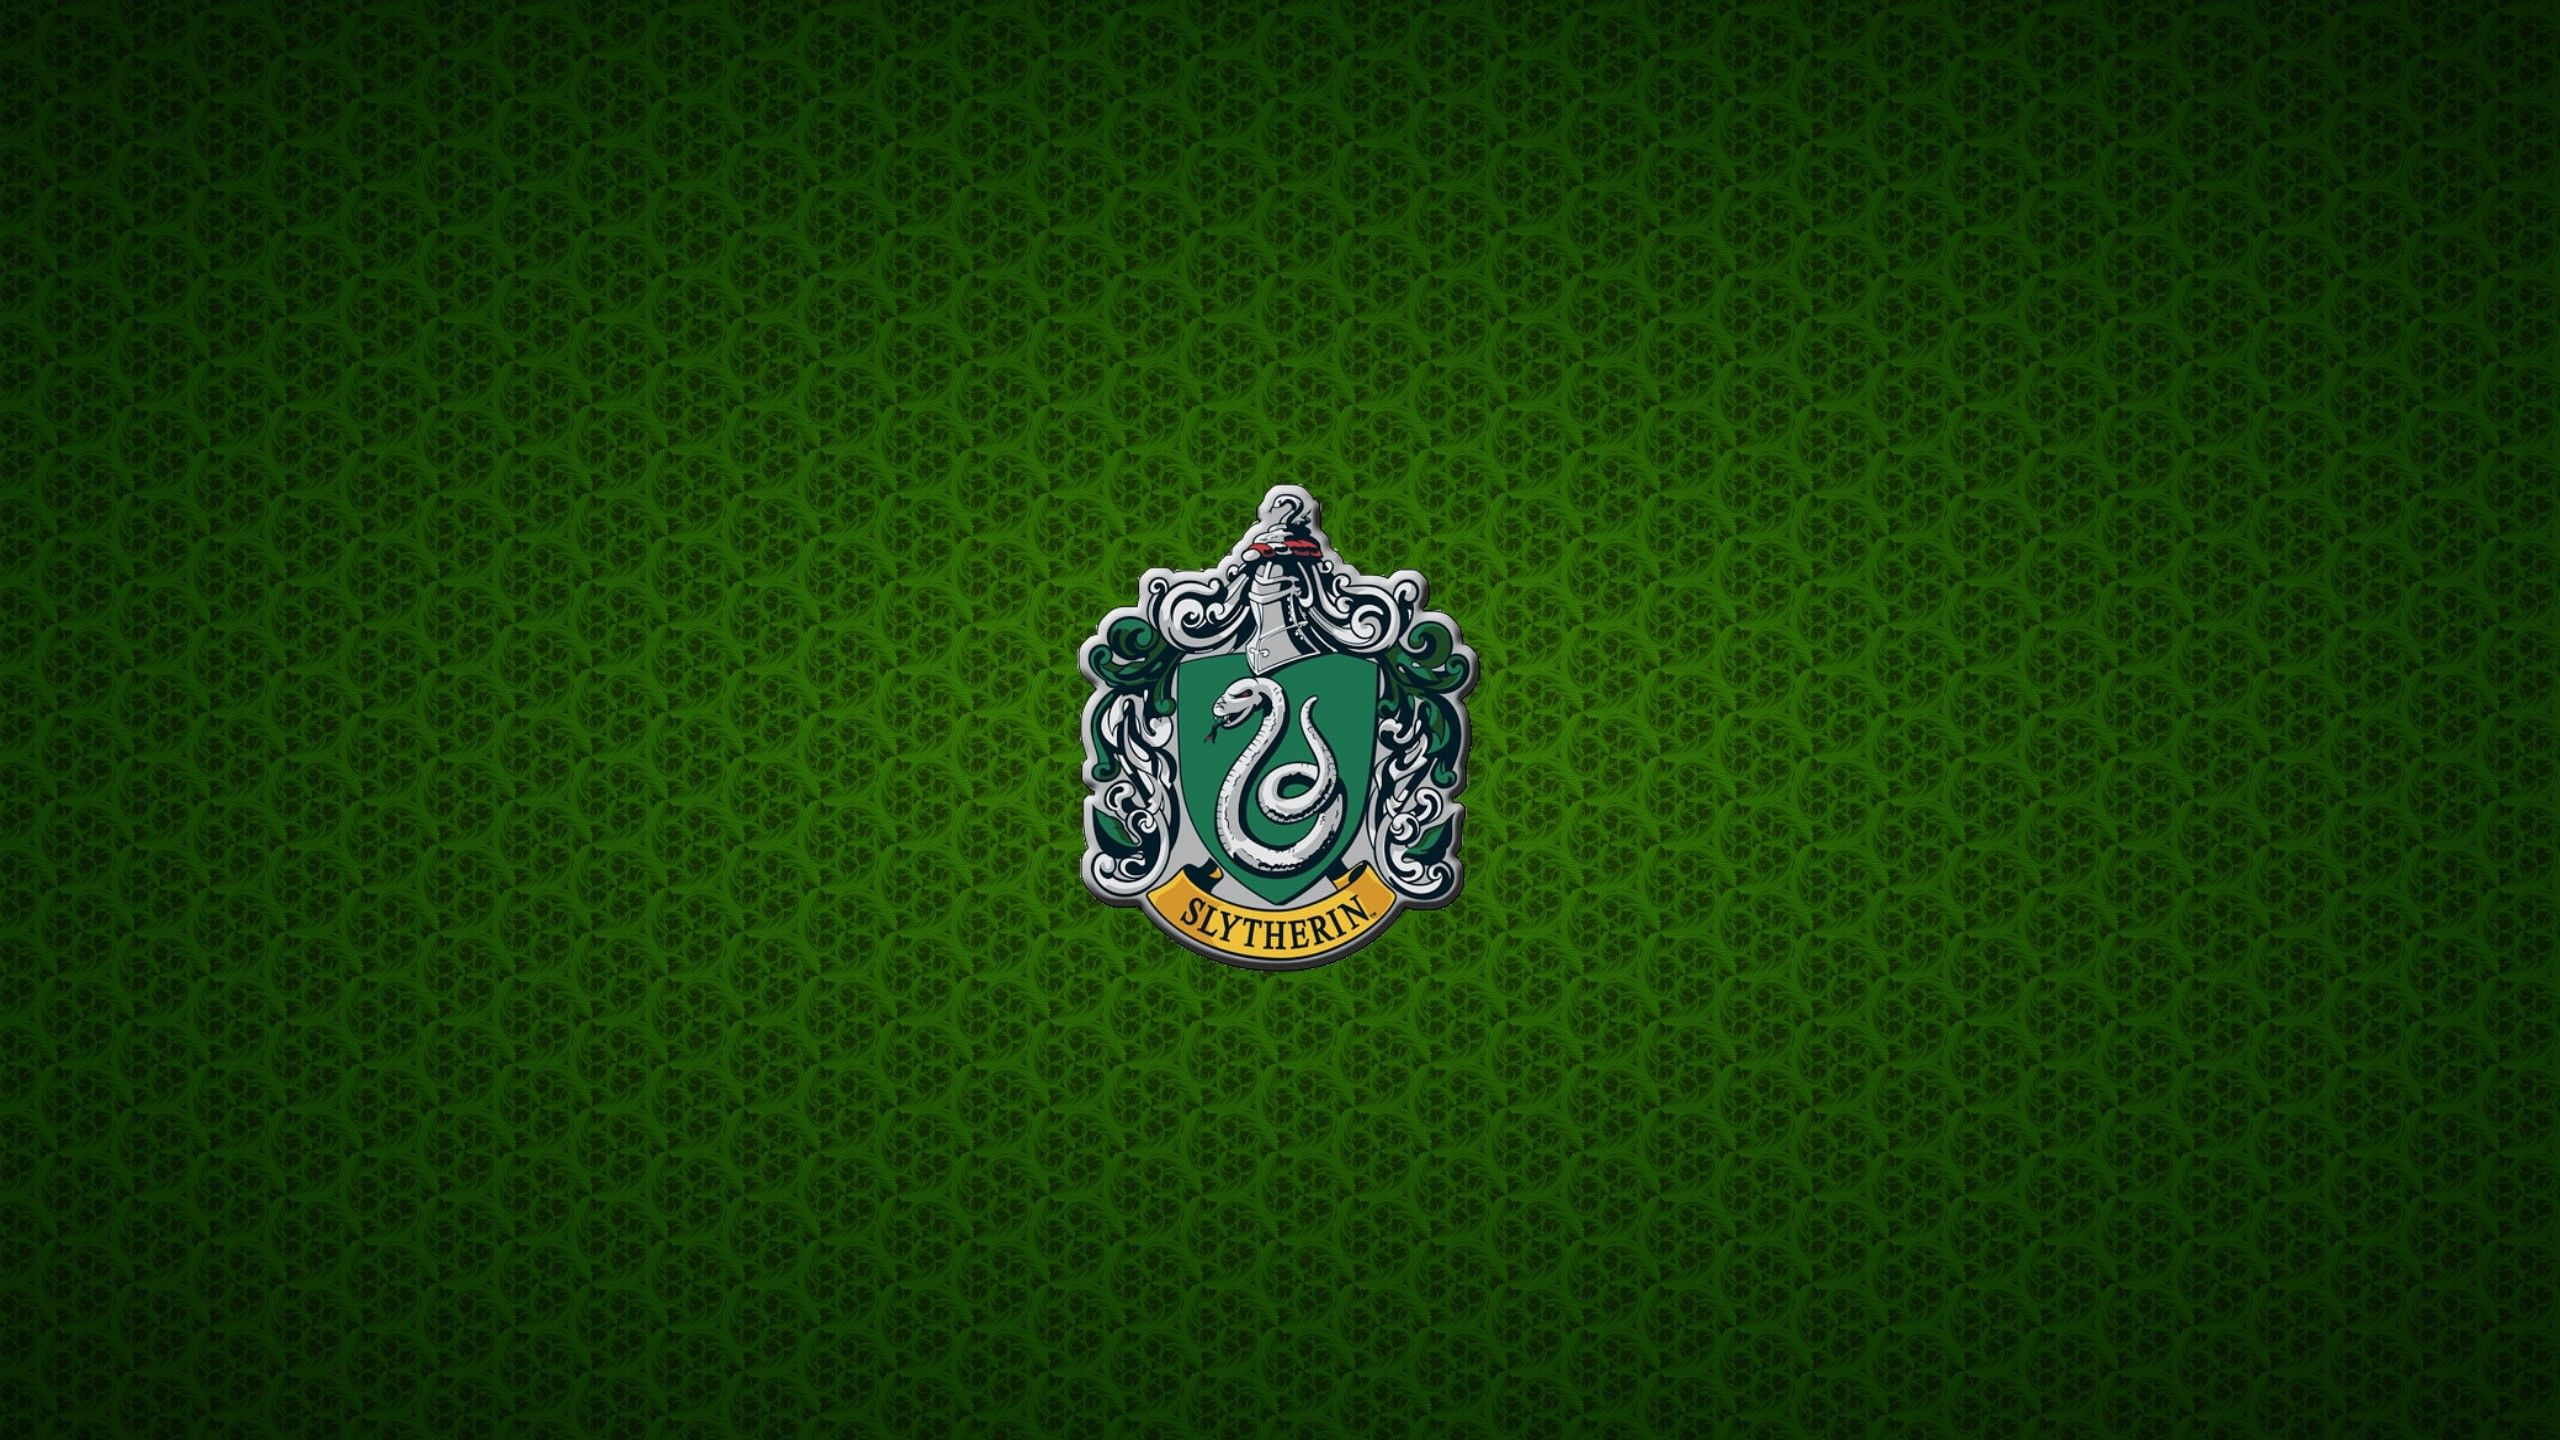 2560x1440 Slytherin wallpaper ·① Download free stunning wallpapers for ...